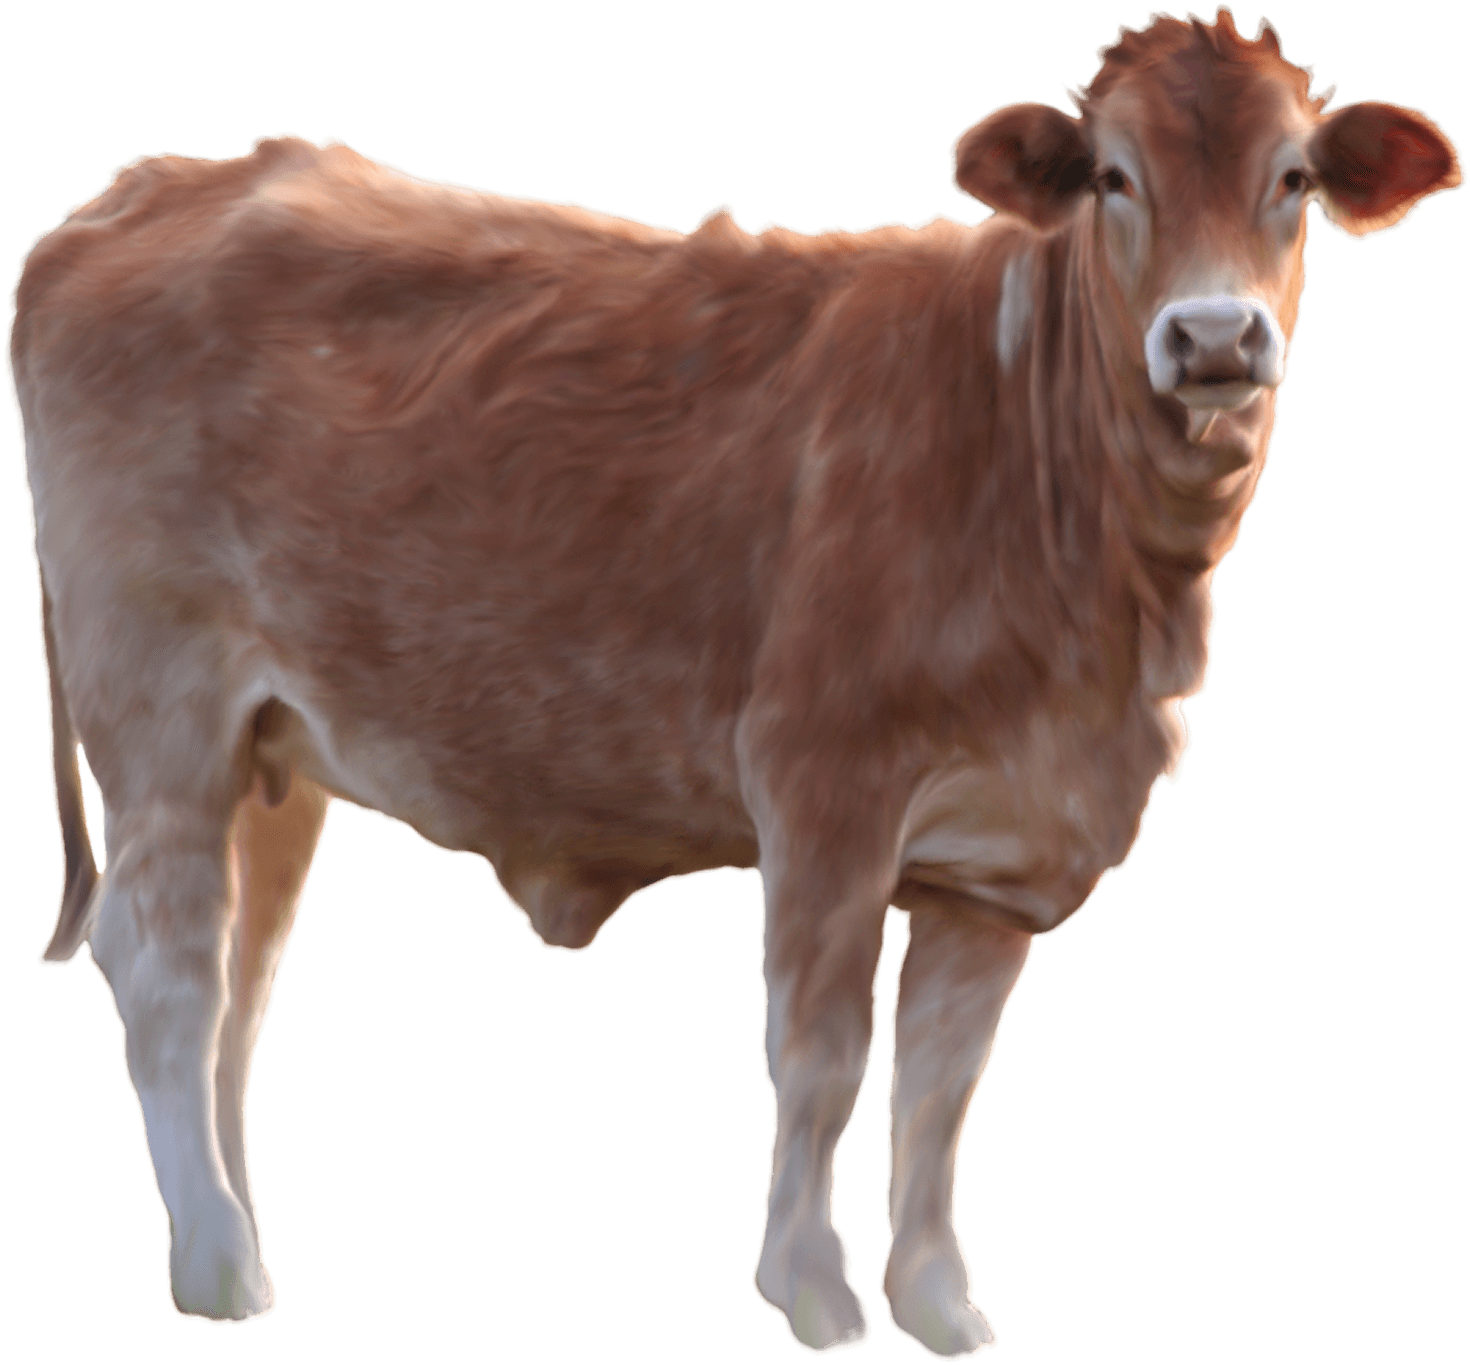 Cow PNG image, free cows PNG picture download.